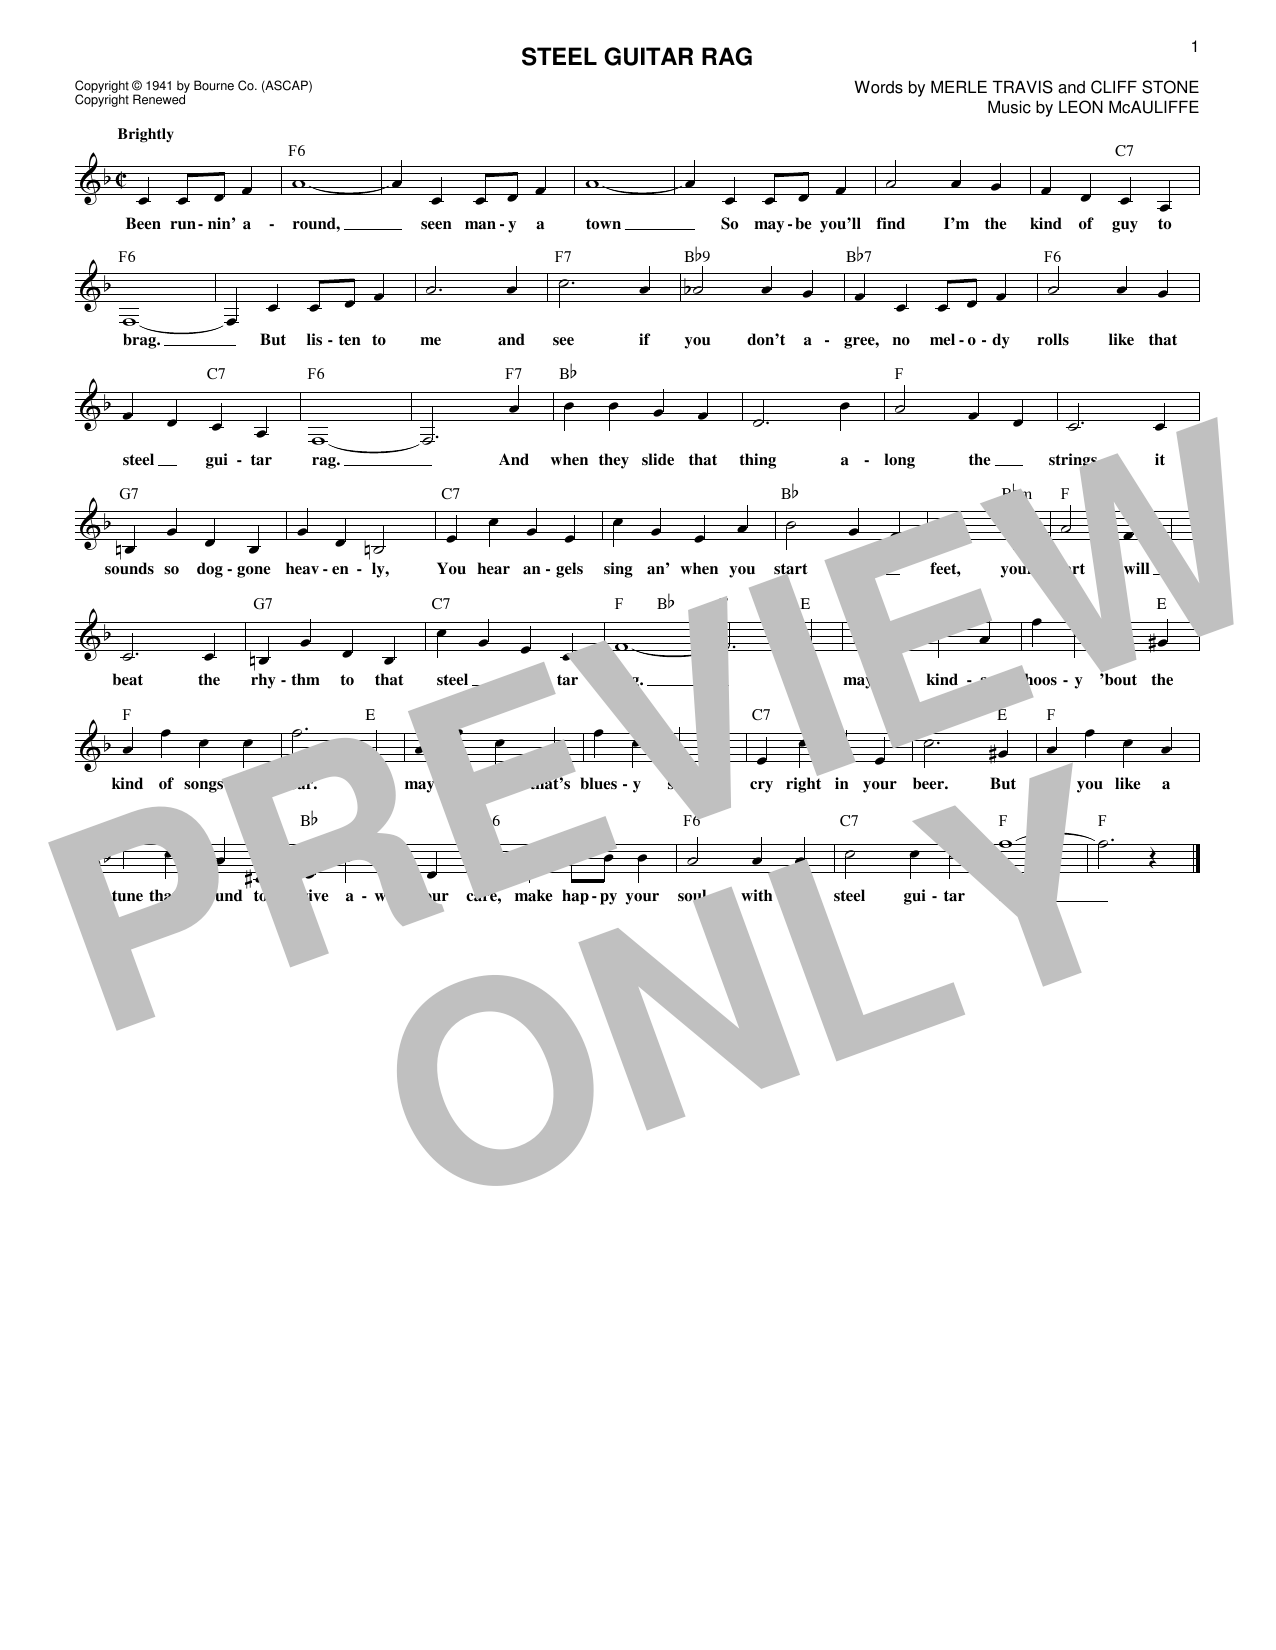 Sheet Music Digital Files To Print Licensed Merle Travis Digital